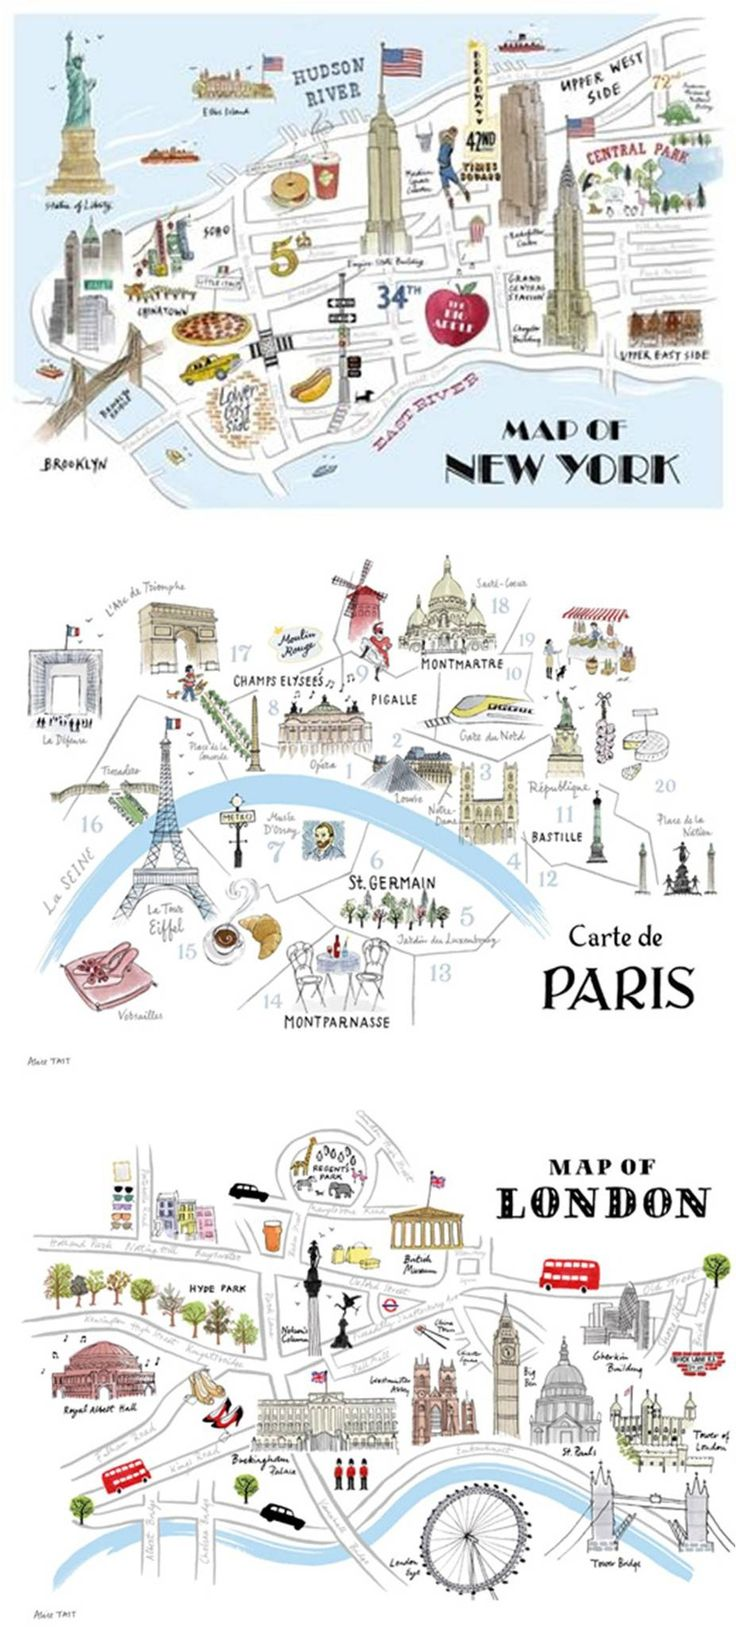 hand drawn maps nyc, london, paris .... I like thinking about maps as a series.